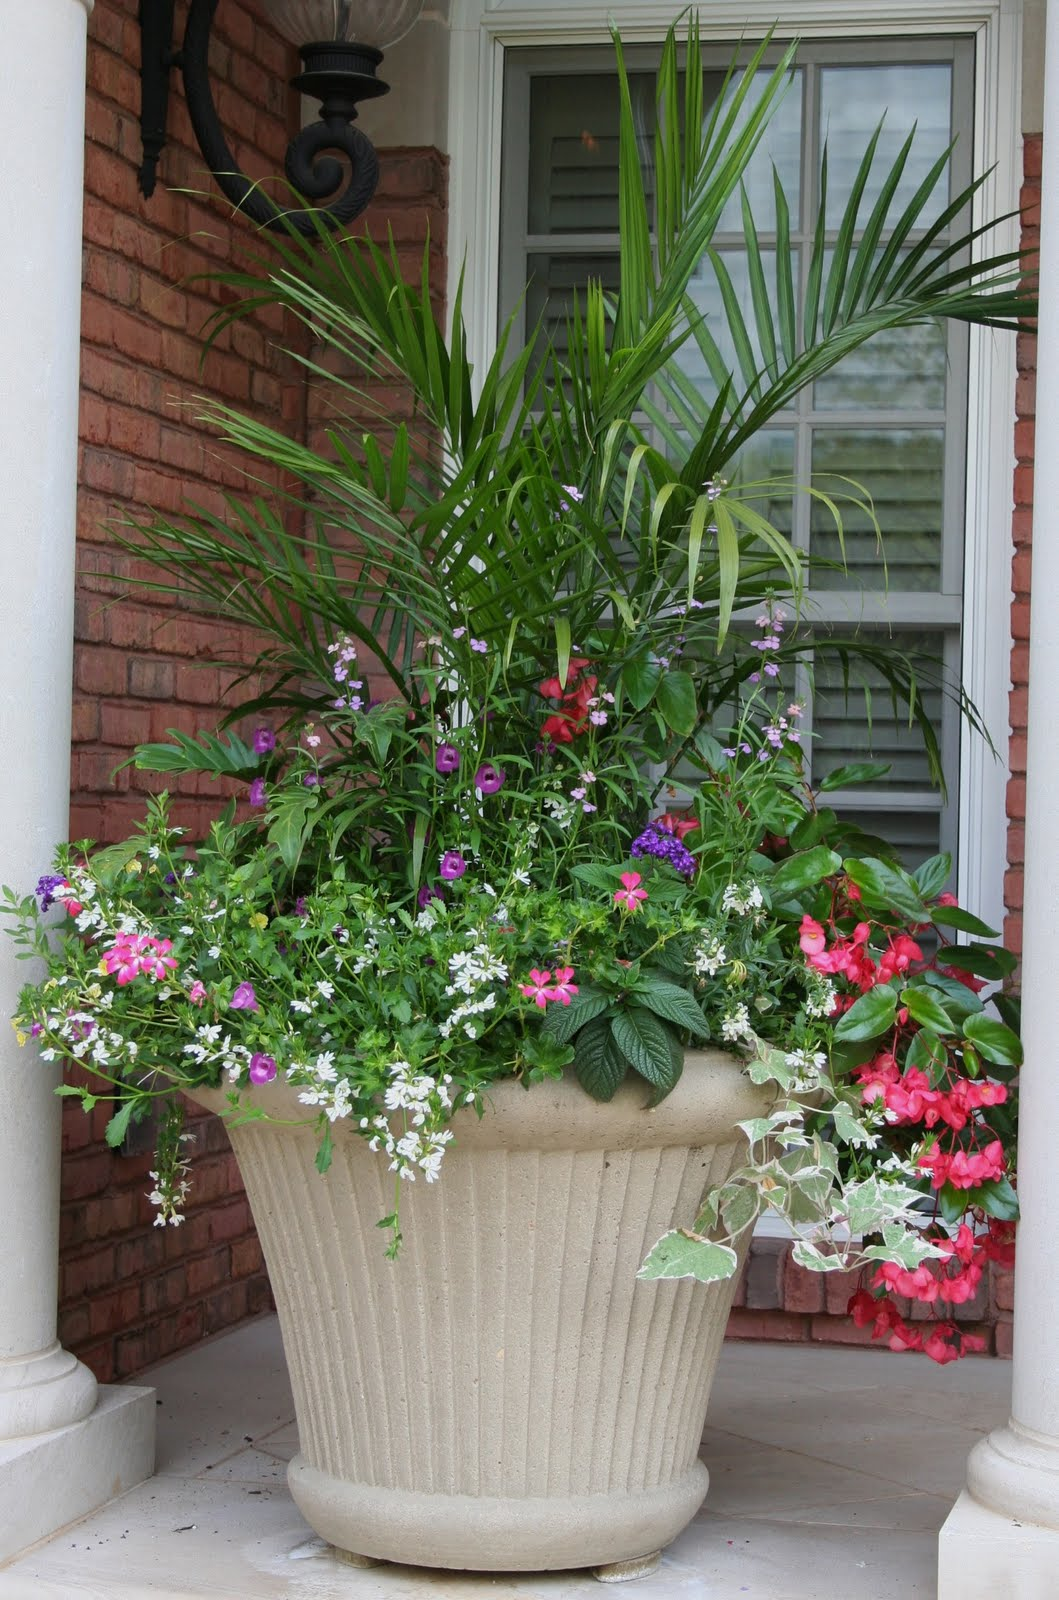 A chef in the garden 05 01 2010 06 01 2010 Container plant ideas front door